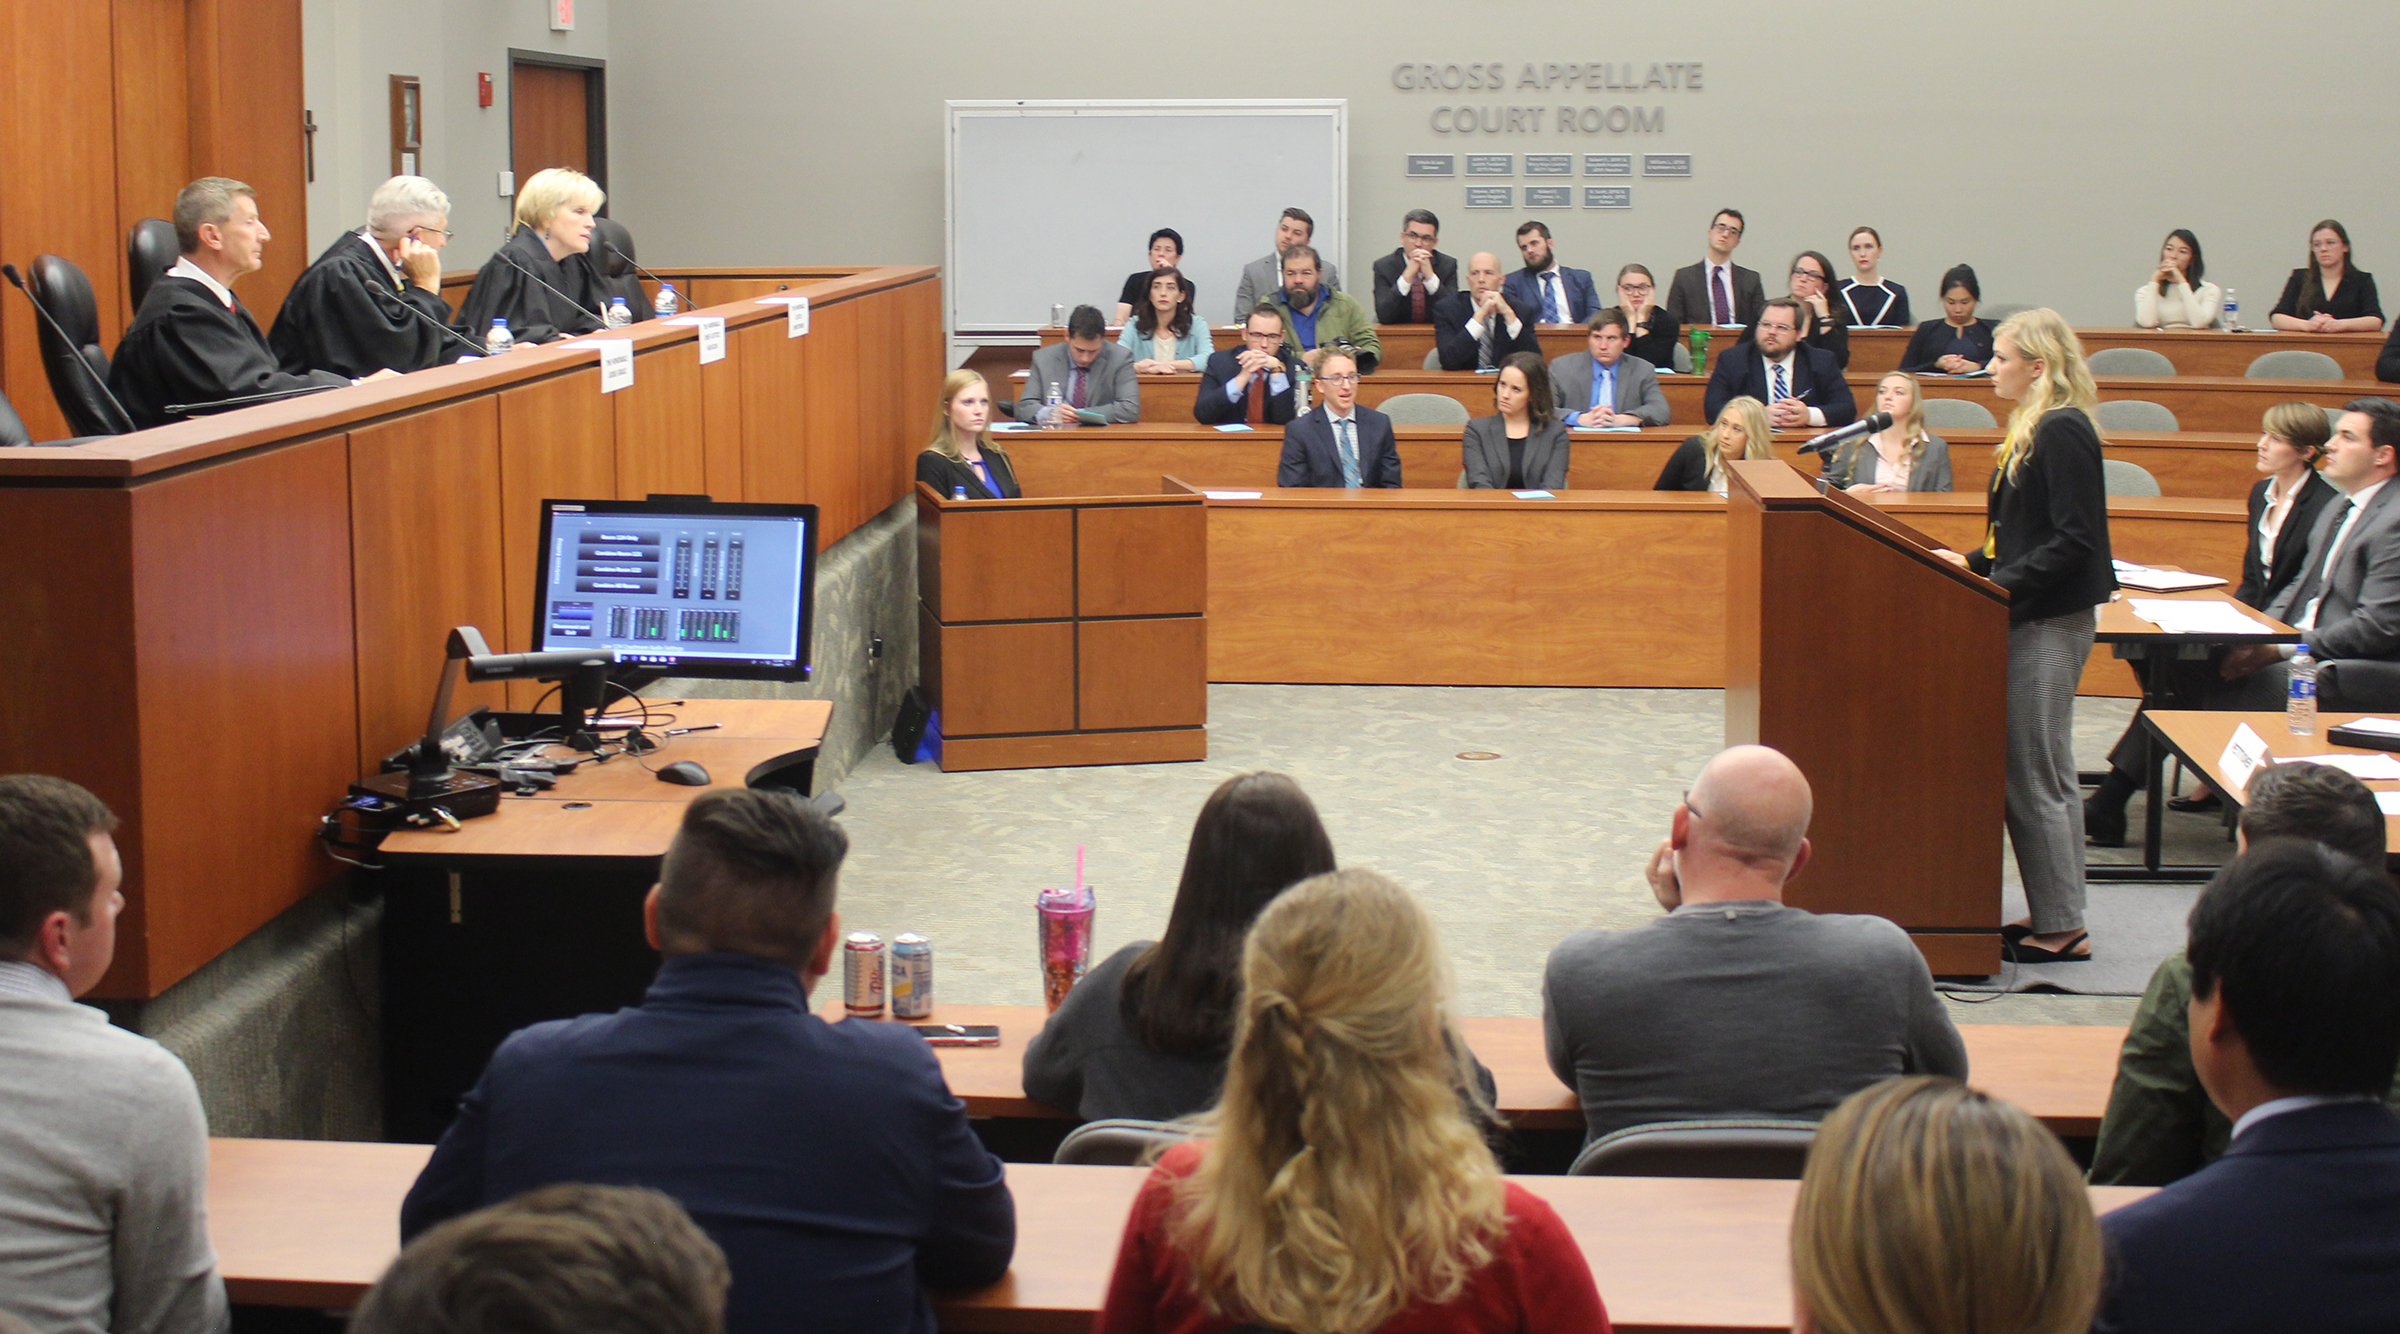 Creighton University second year law student Callie Kanthack, presents an argument during the final round of the annual moot court competition at the Creighton University School of Law on Monday, Nov. 4, 2019.